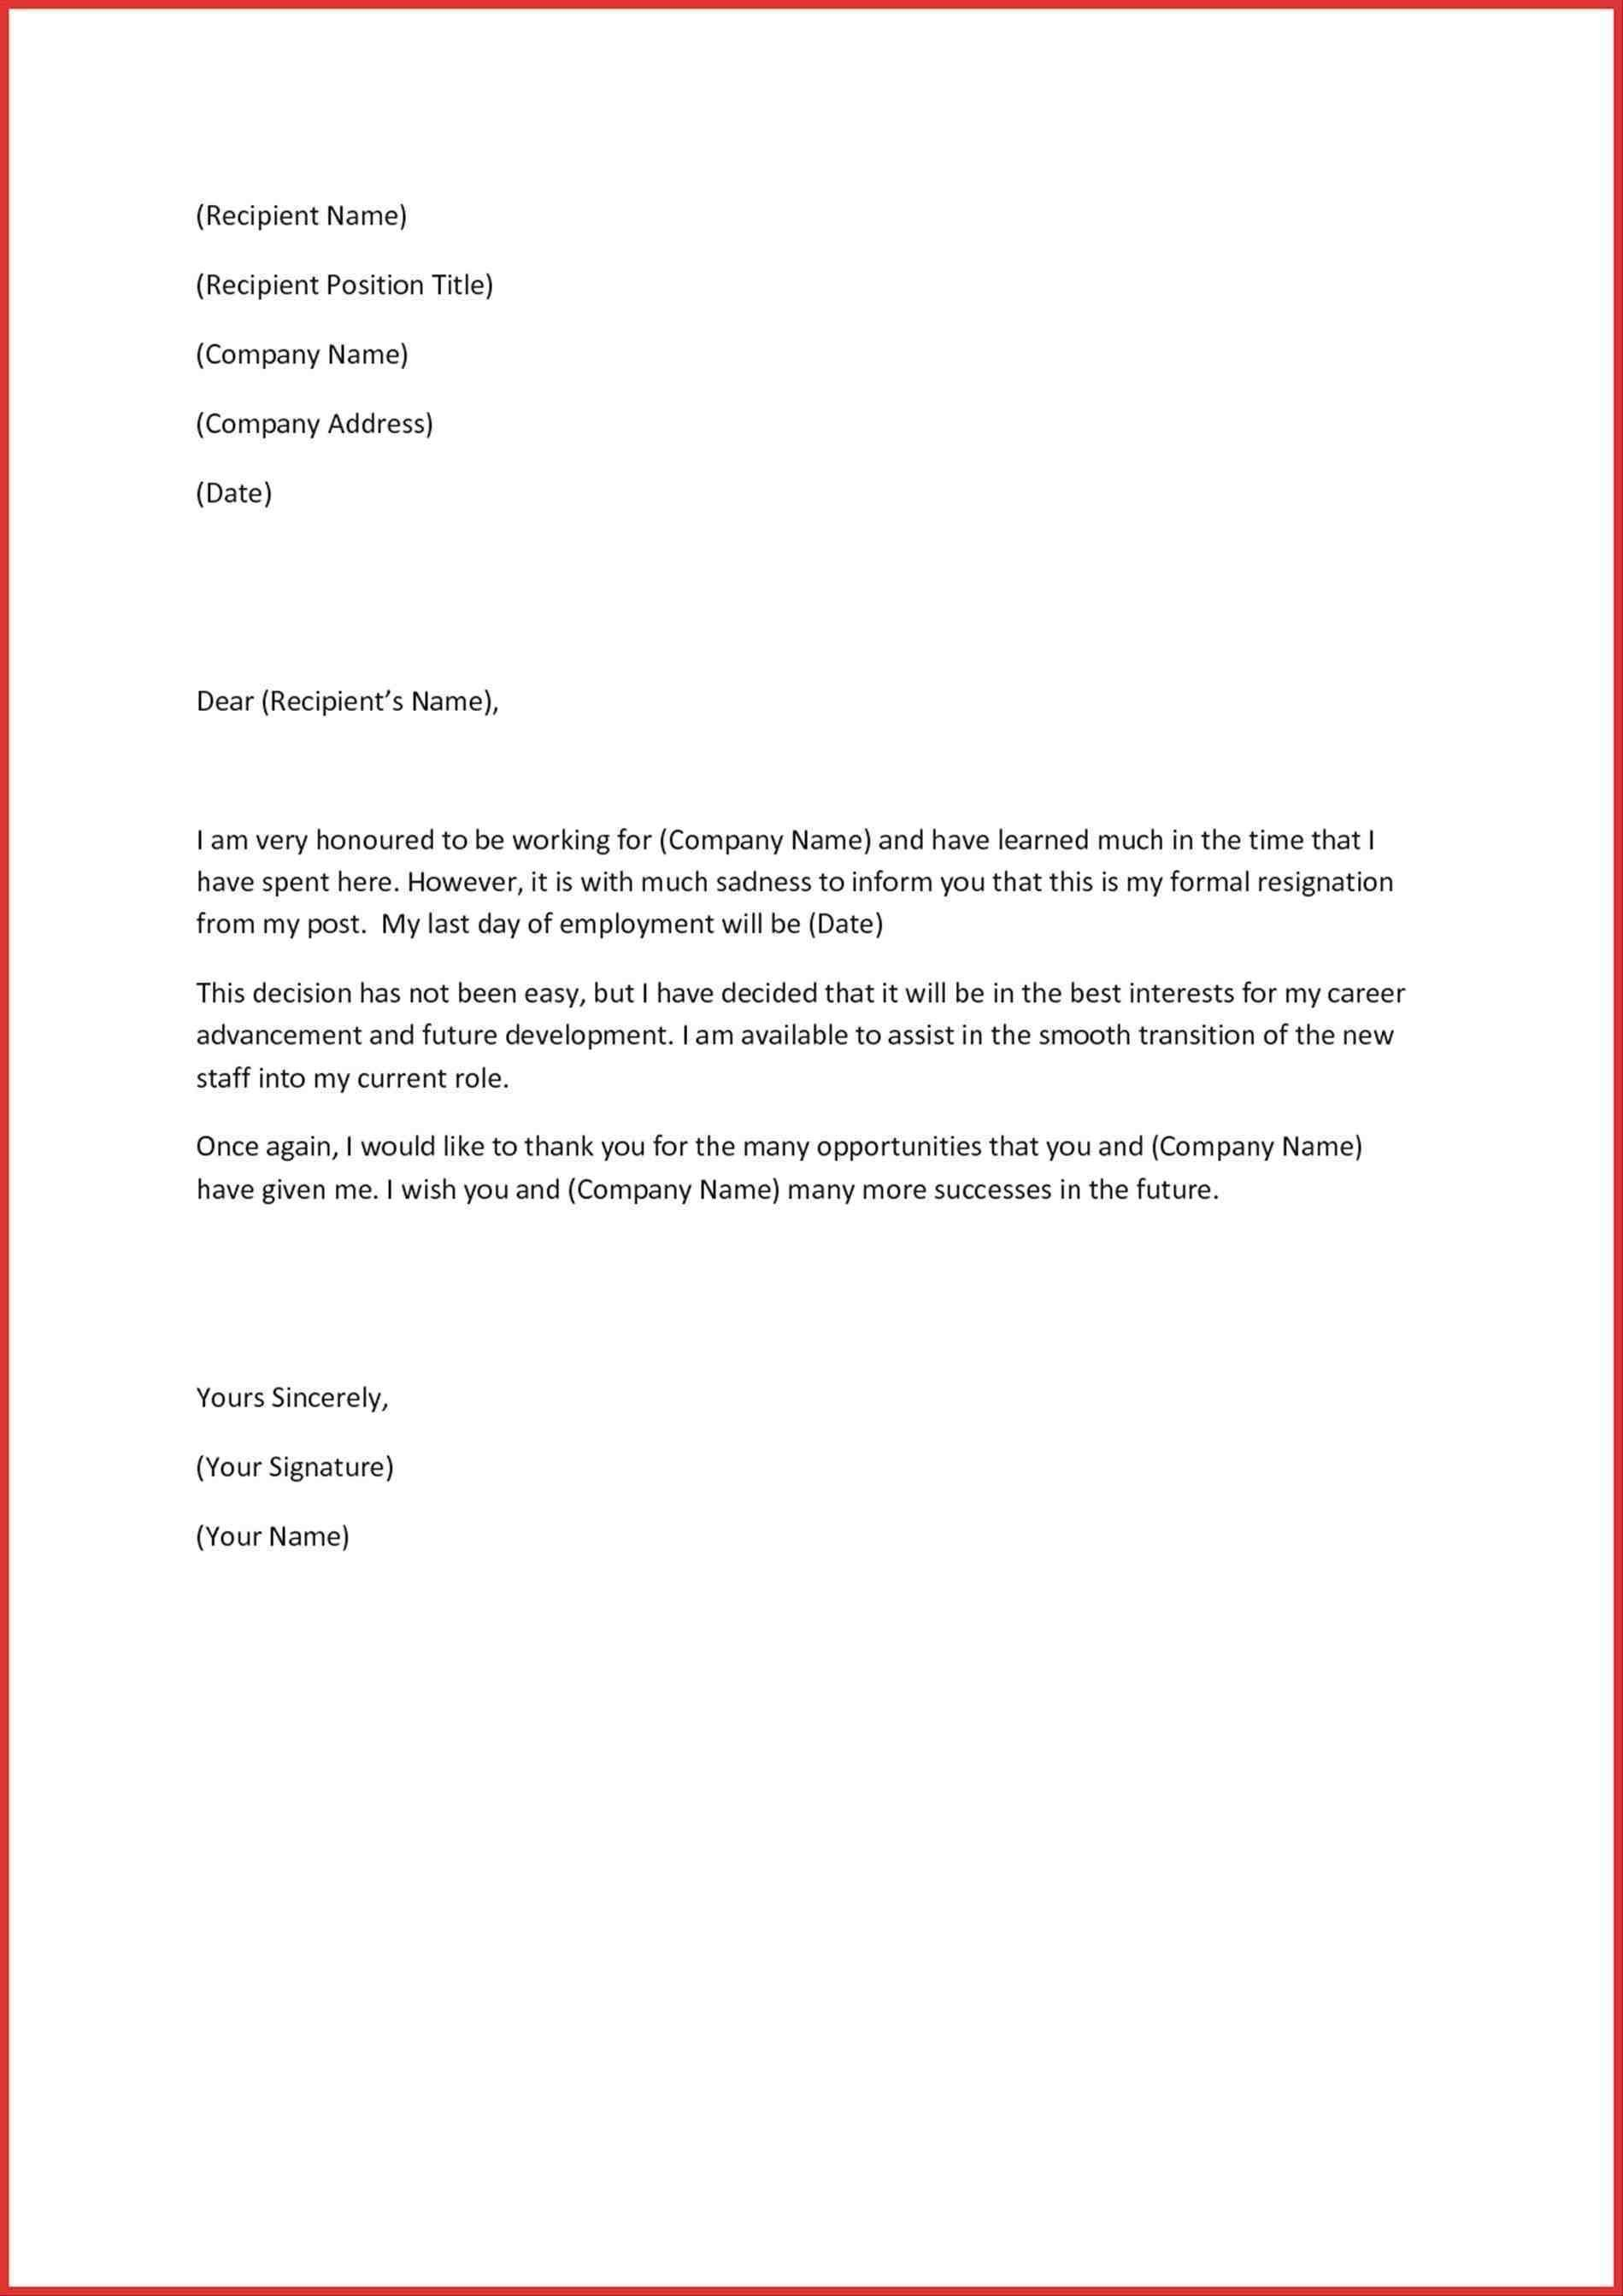 Official Letter Of Resignation Template - Letter Resignation Singapore format New format Resignation Letter